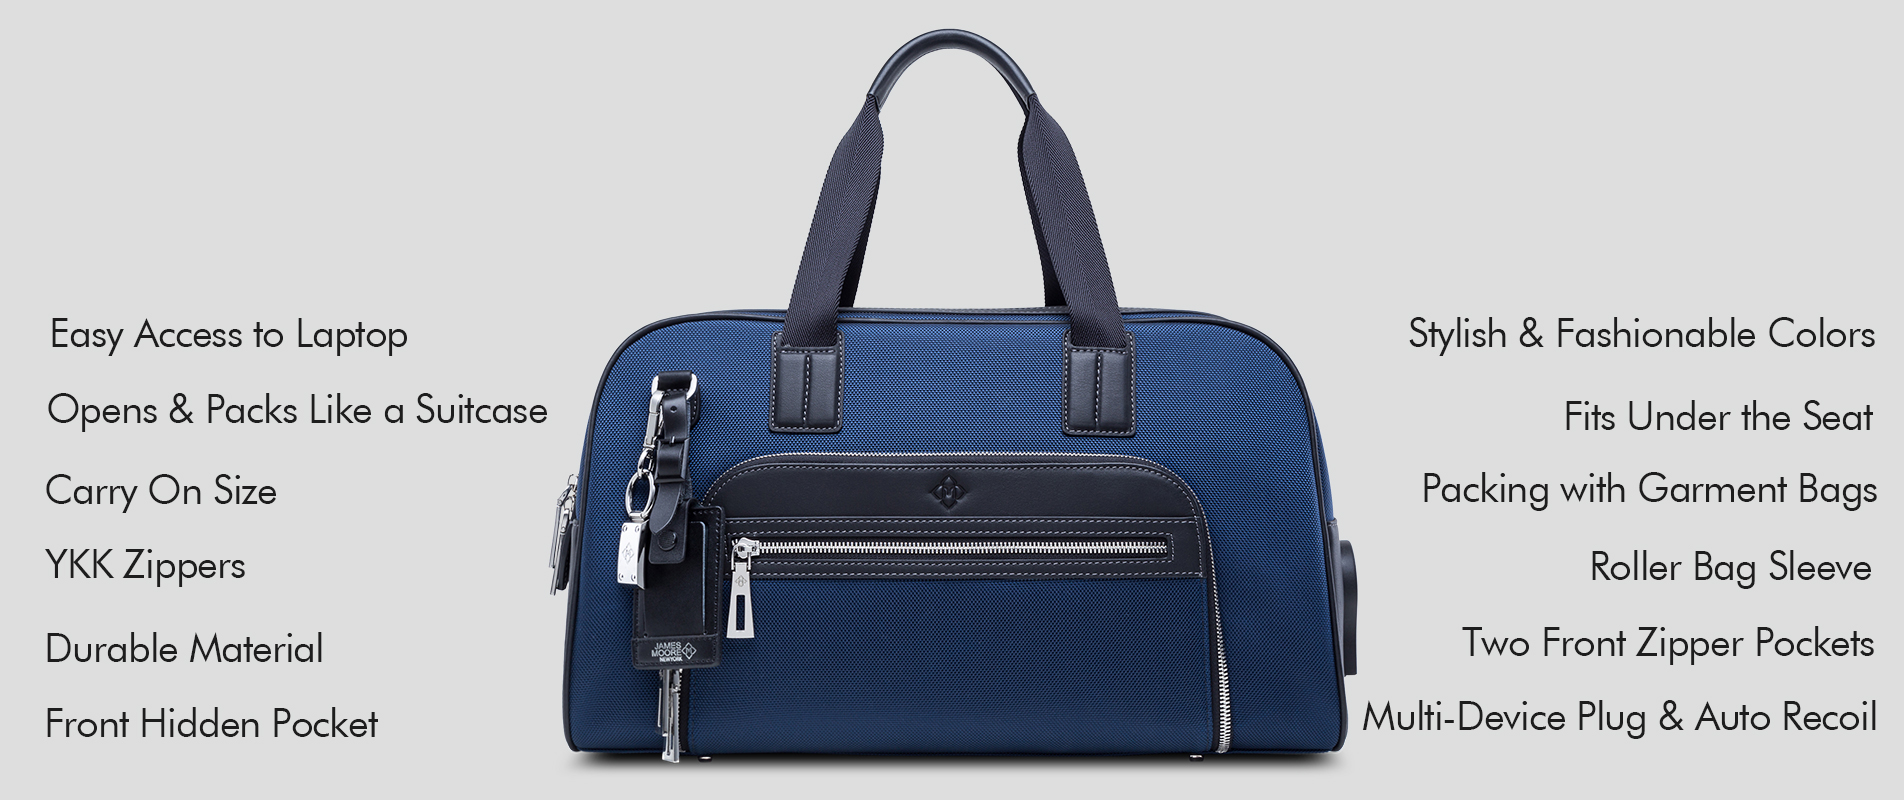 The Most Functional Travel Bag